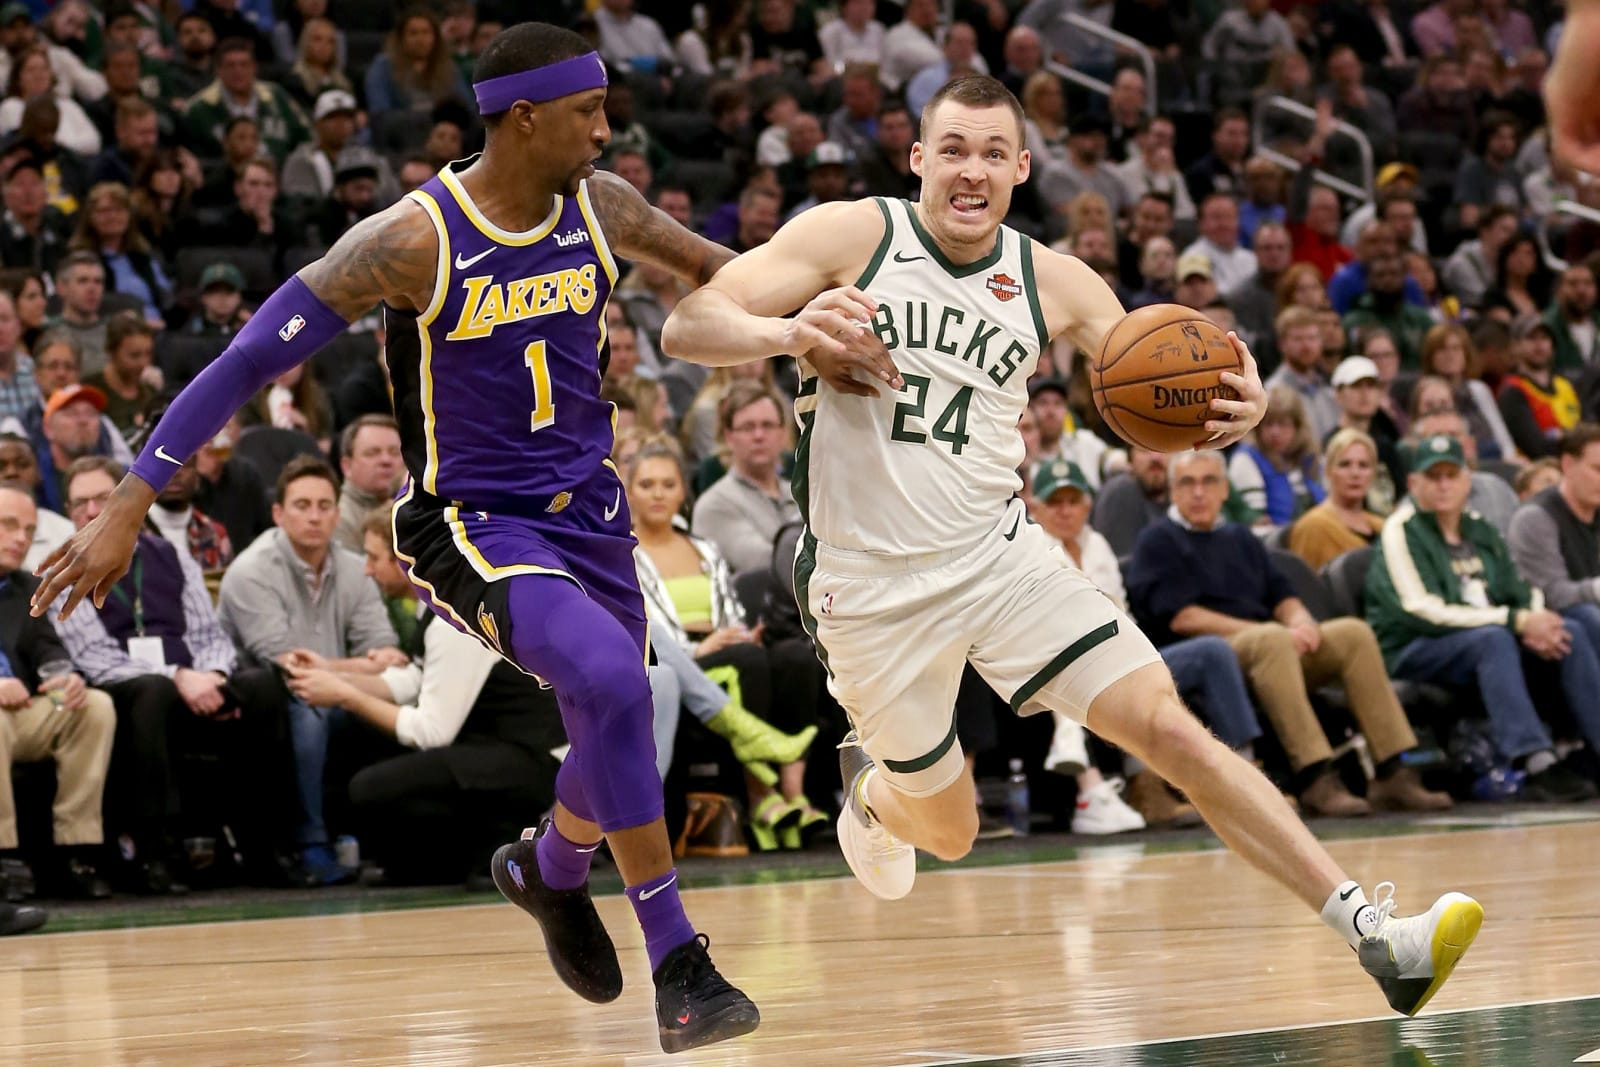 Milwaukee Bucks: Pat Connaughton, Los Angeles Lakers: Kentavious Caldwell-Pope